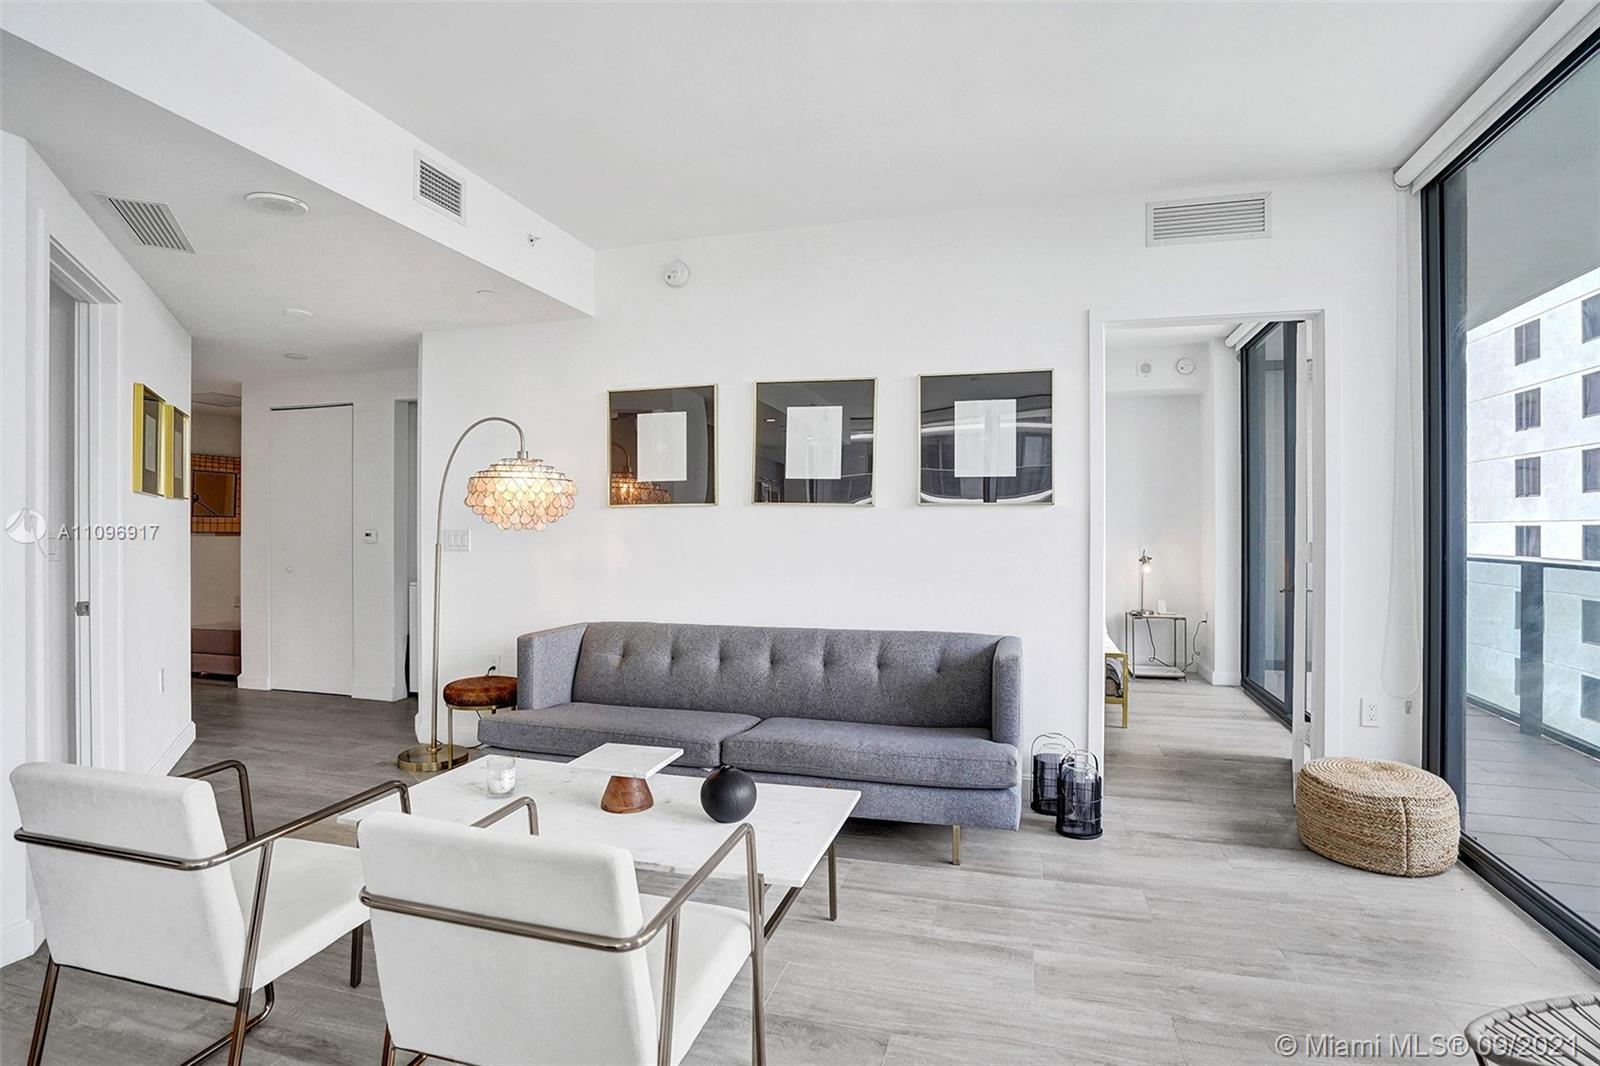 BRICKELL HEIGHTS WEST CON Condo,For Rent,BRICKELL HEIGHTS WEST CON Brickell,realty,broker,condos near me